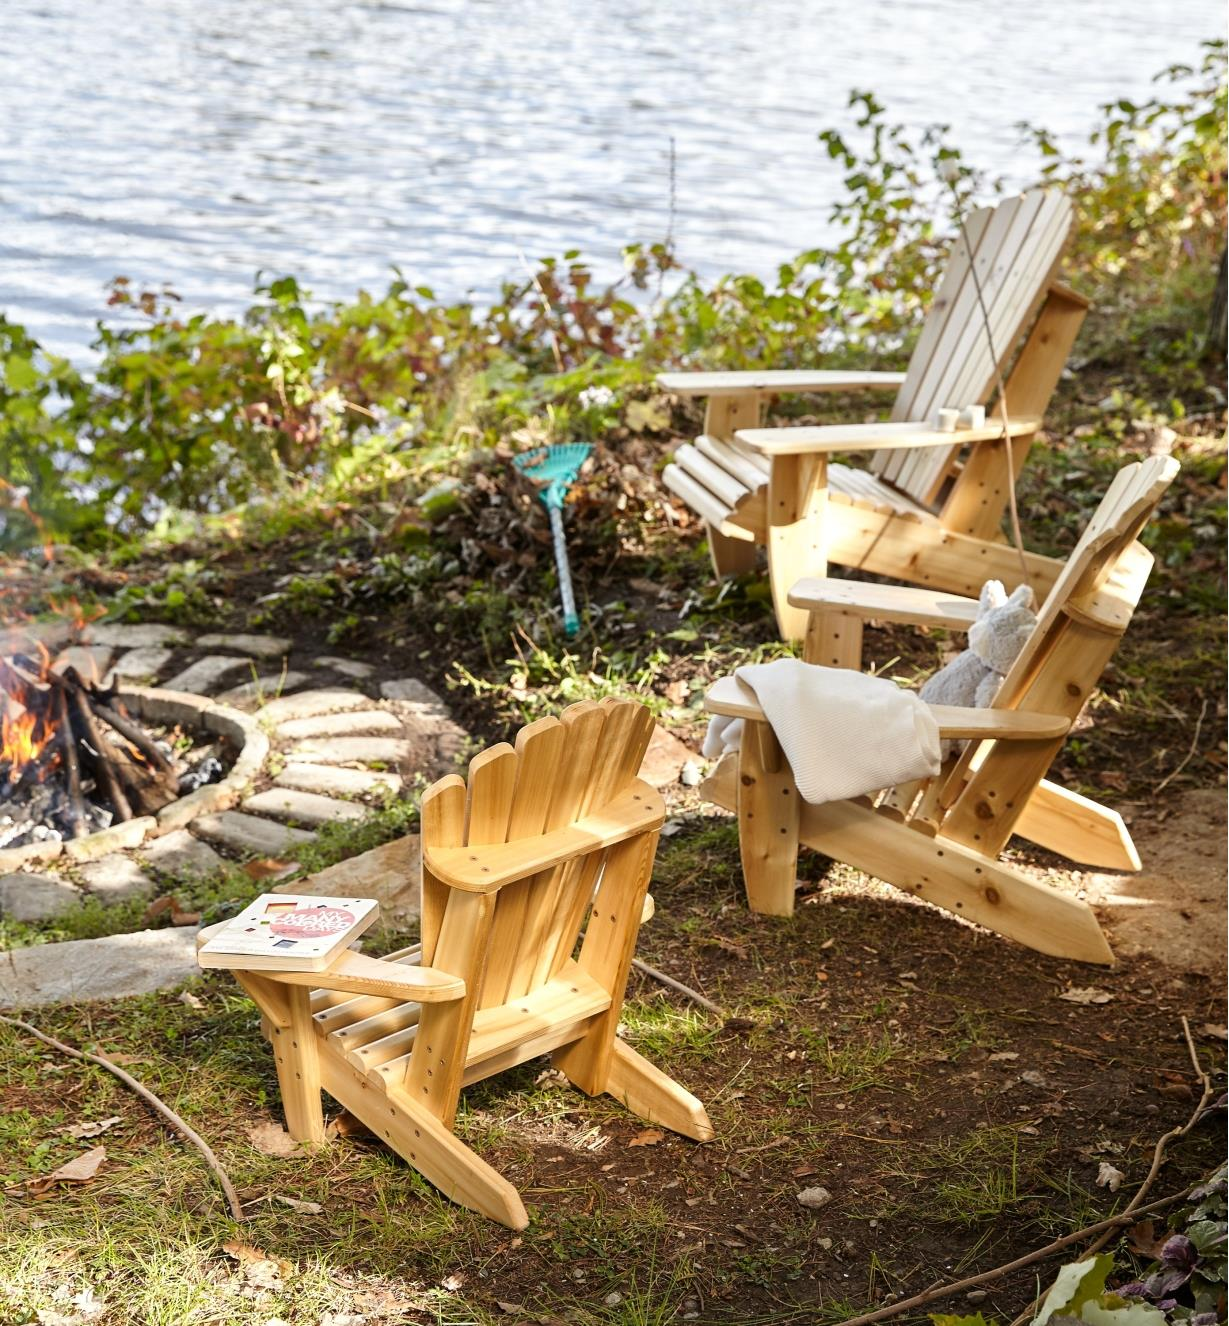 Examples of completed chairs placed around an outdoor fire pit